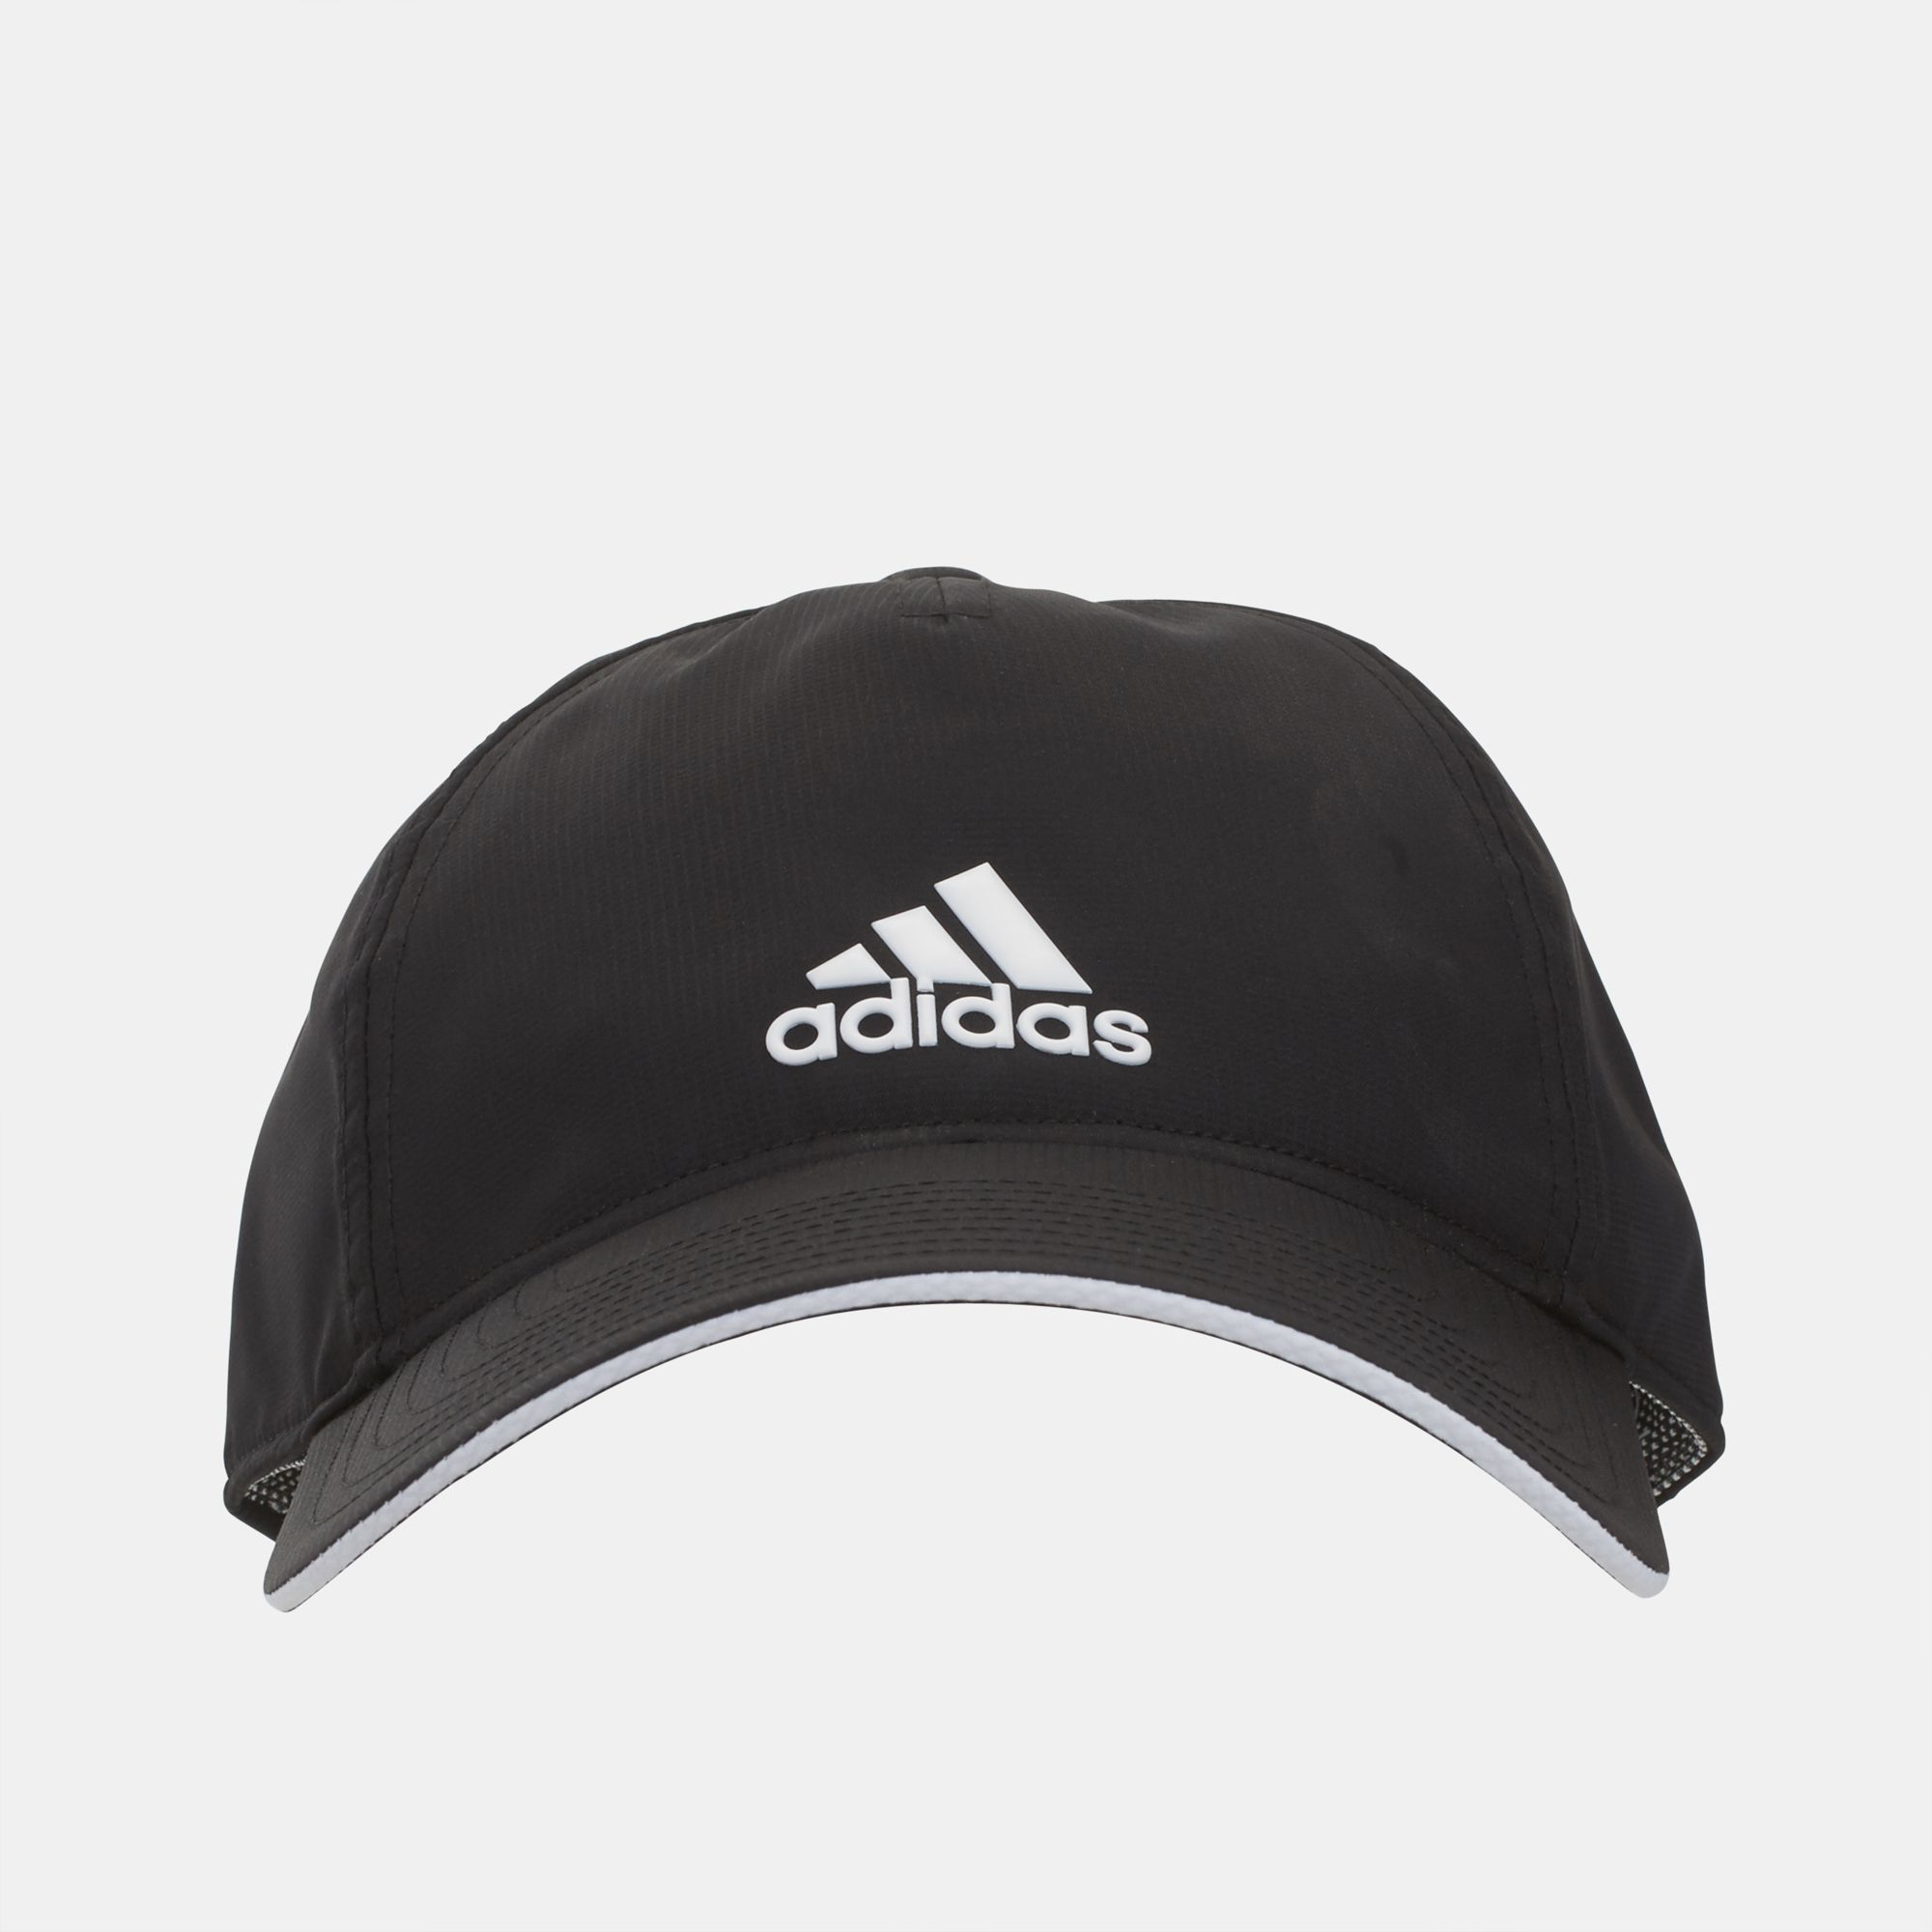 32459d6aee5 Shop Black adidas Classic Five-Panel Climalite Cap for Unisex by ...